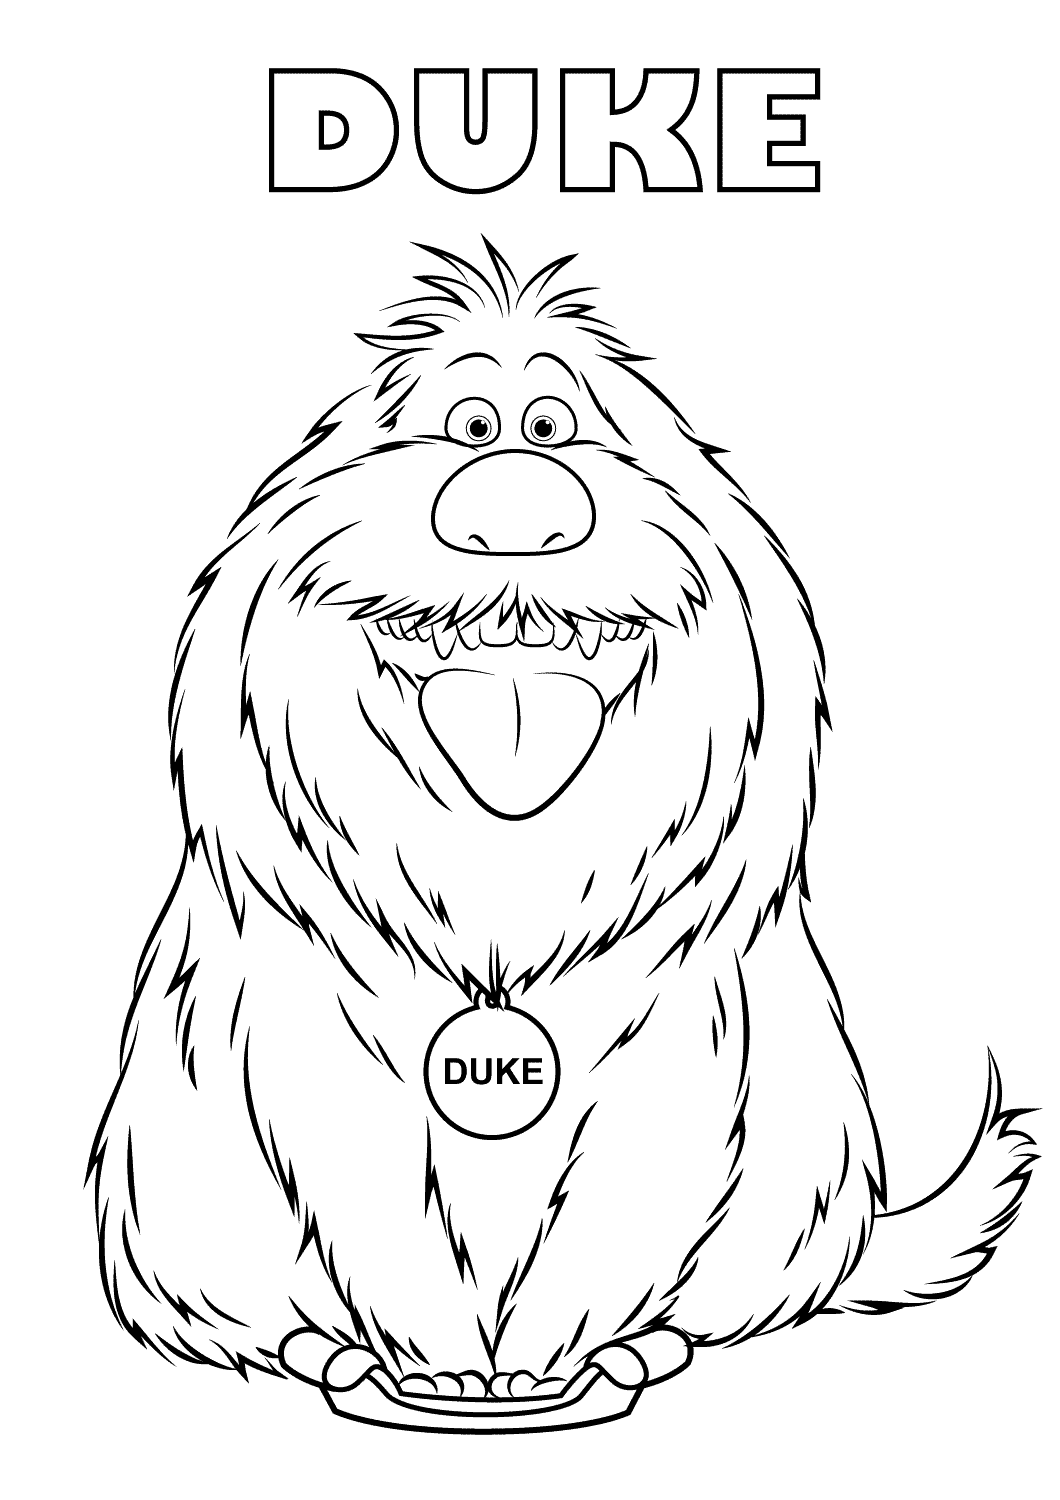 The Secret Life of Pets coloring page to download for free